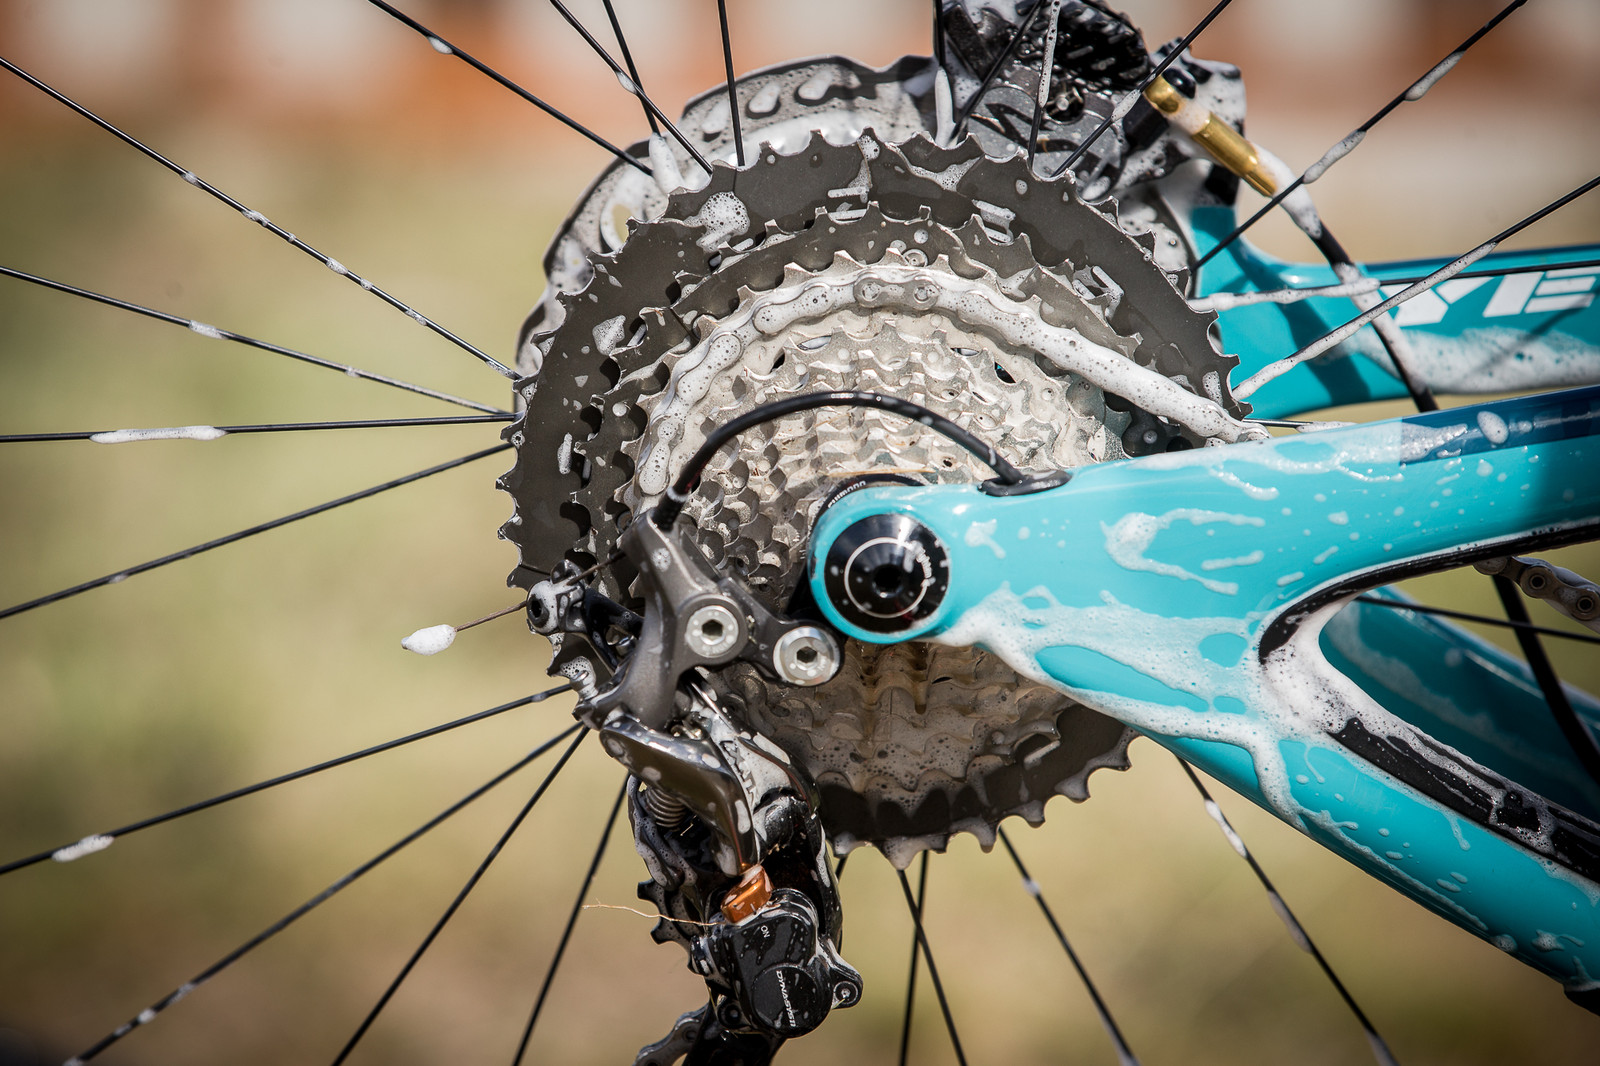 Richie Rude's Shimano 11-46t Shimano XT Cassette - PIT BITS - Enduro World Series, Valberg - Mountain Biking Pictures - Vital MTB